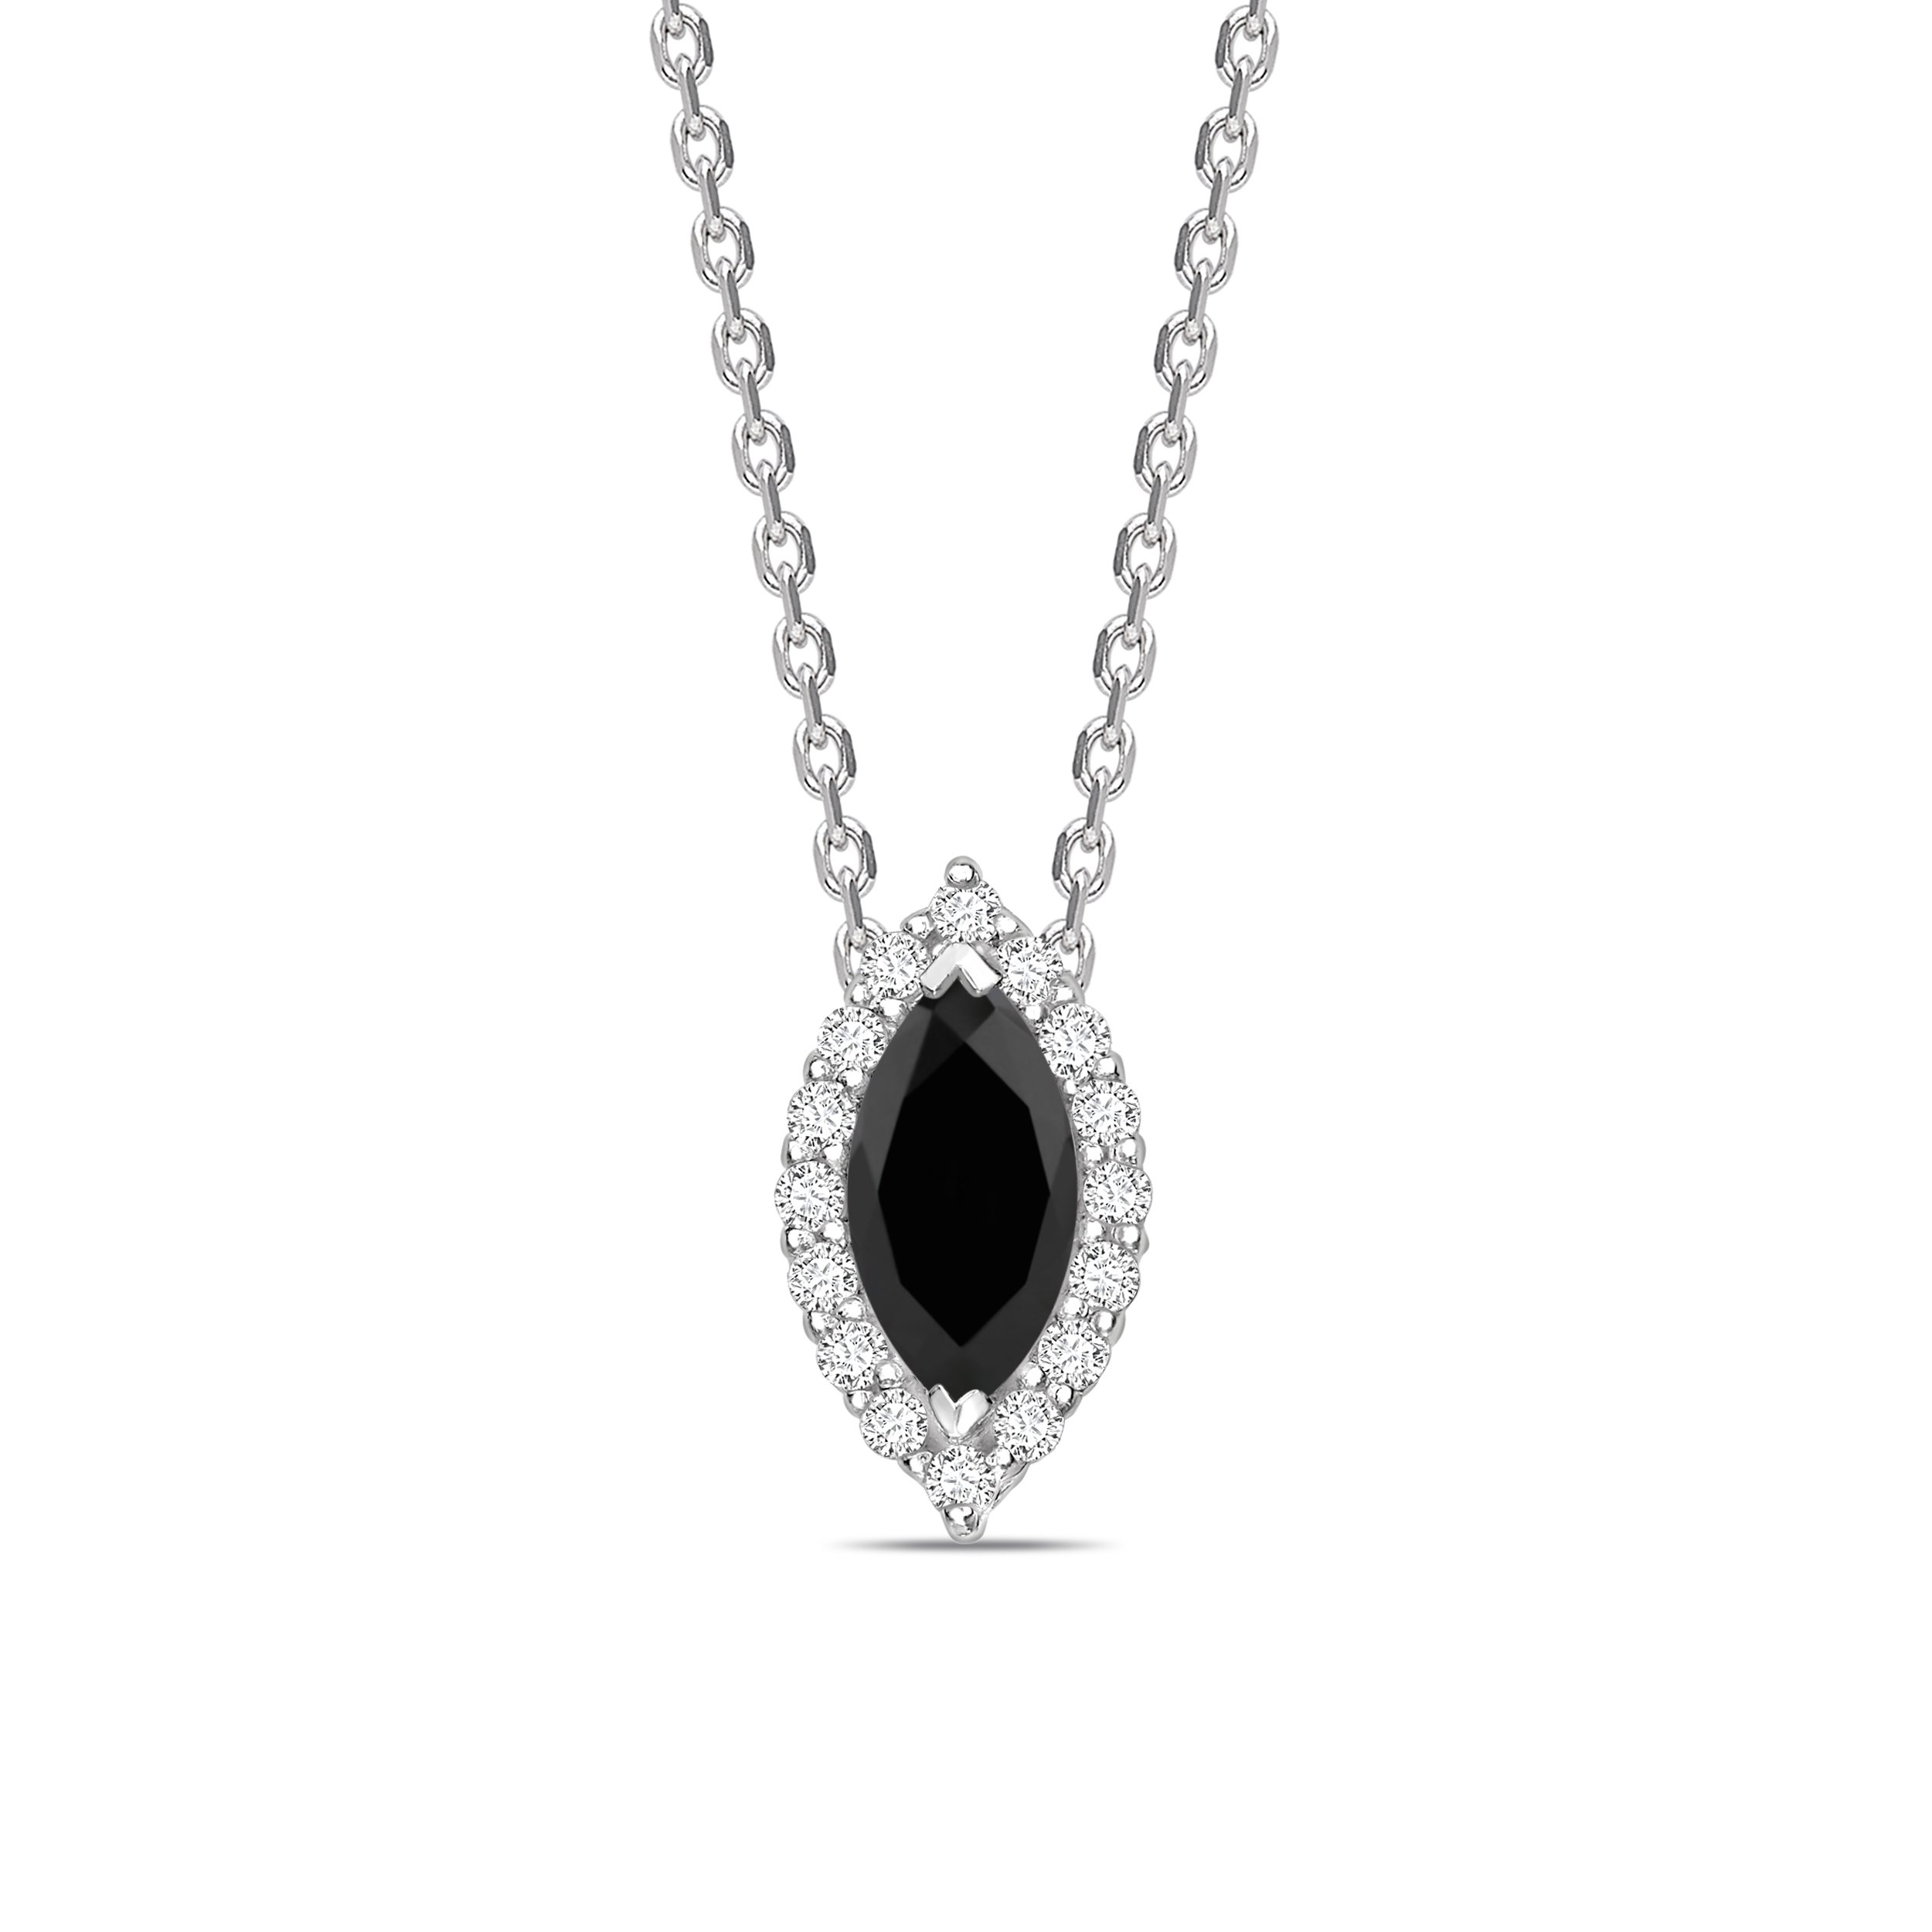 Halo Style Marquise Cut Black Diamond Solitaire Pendants Necklace